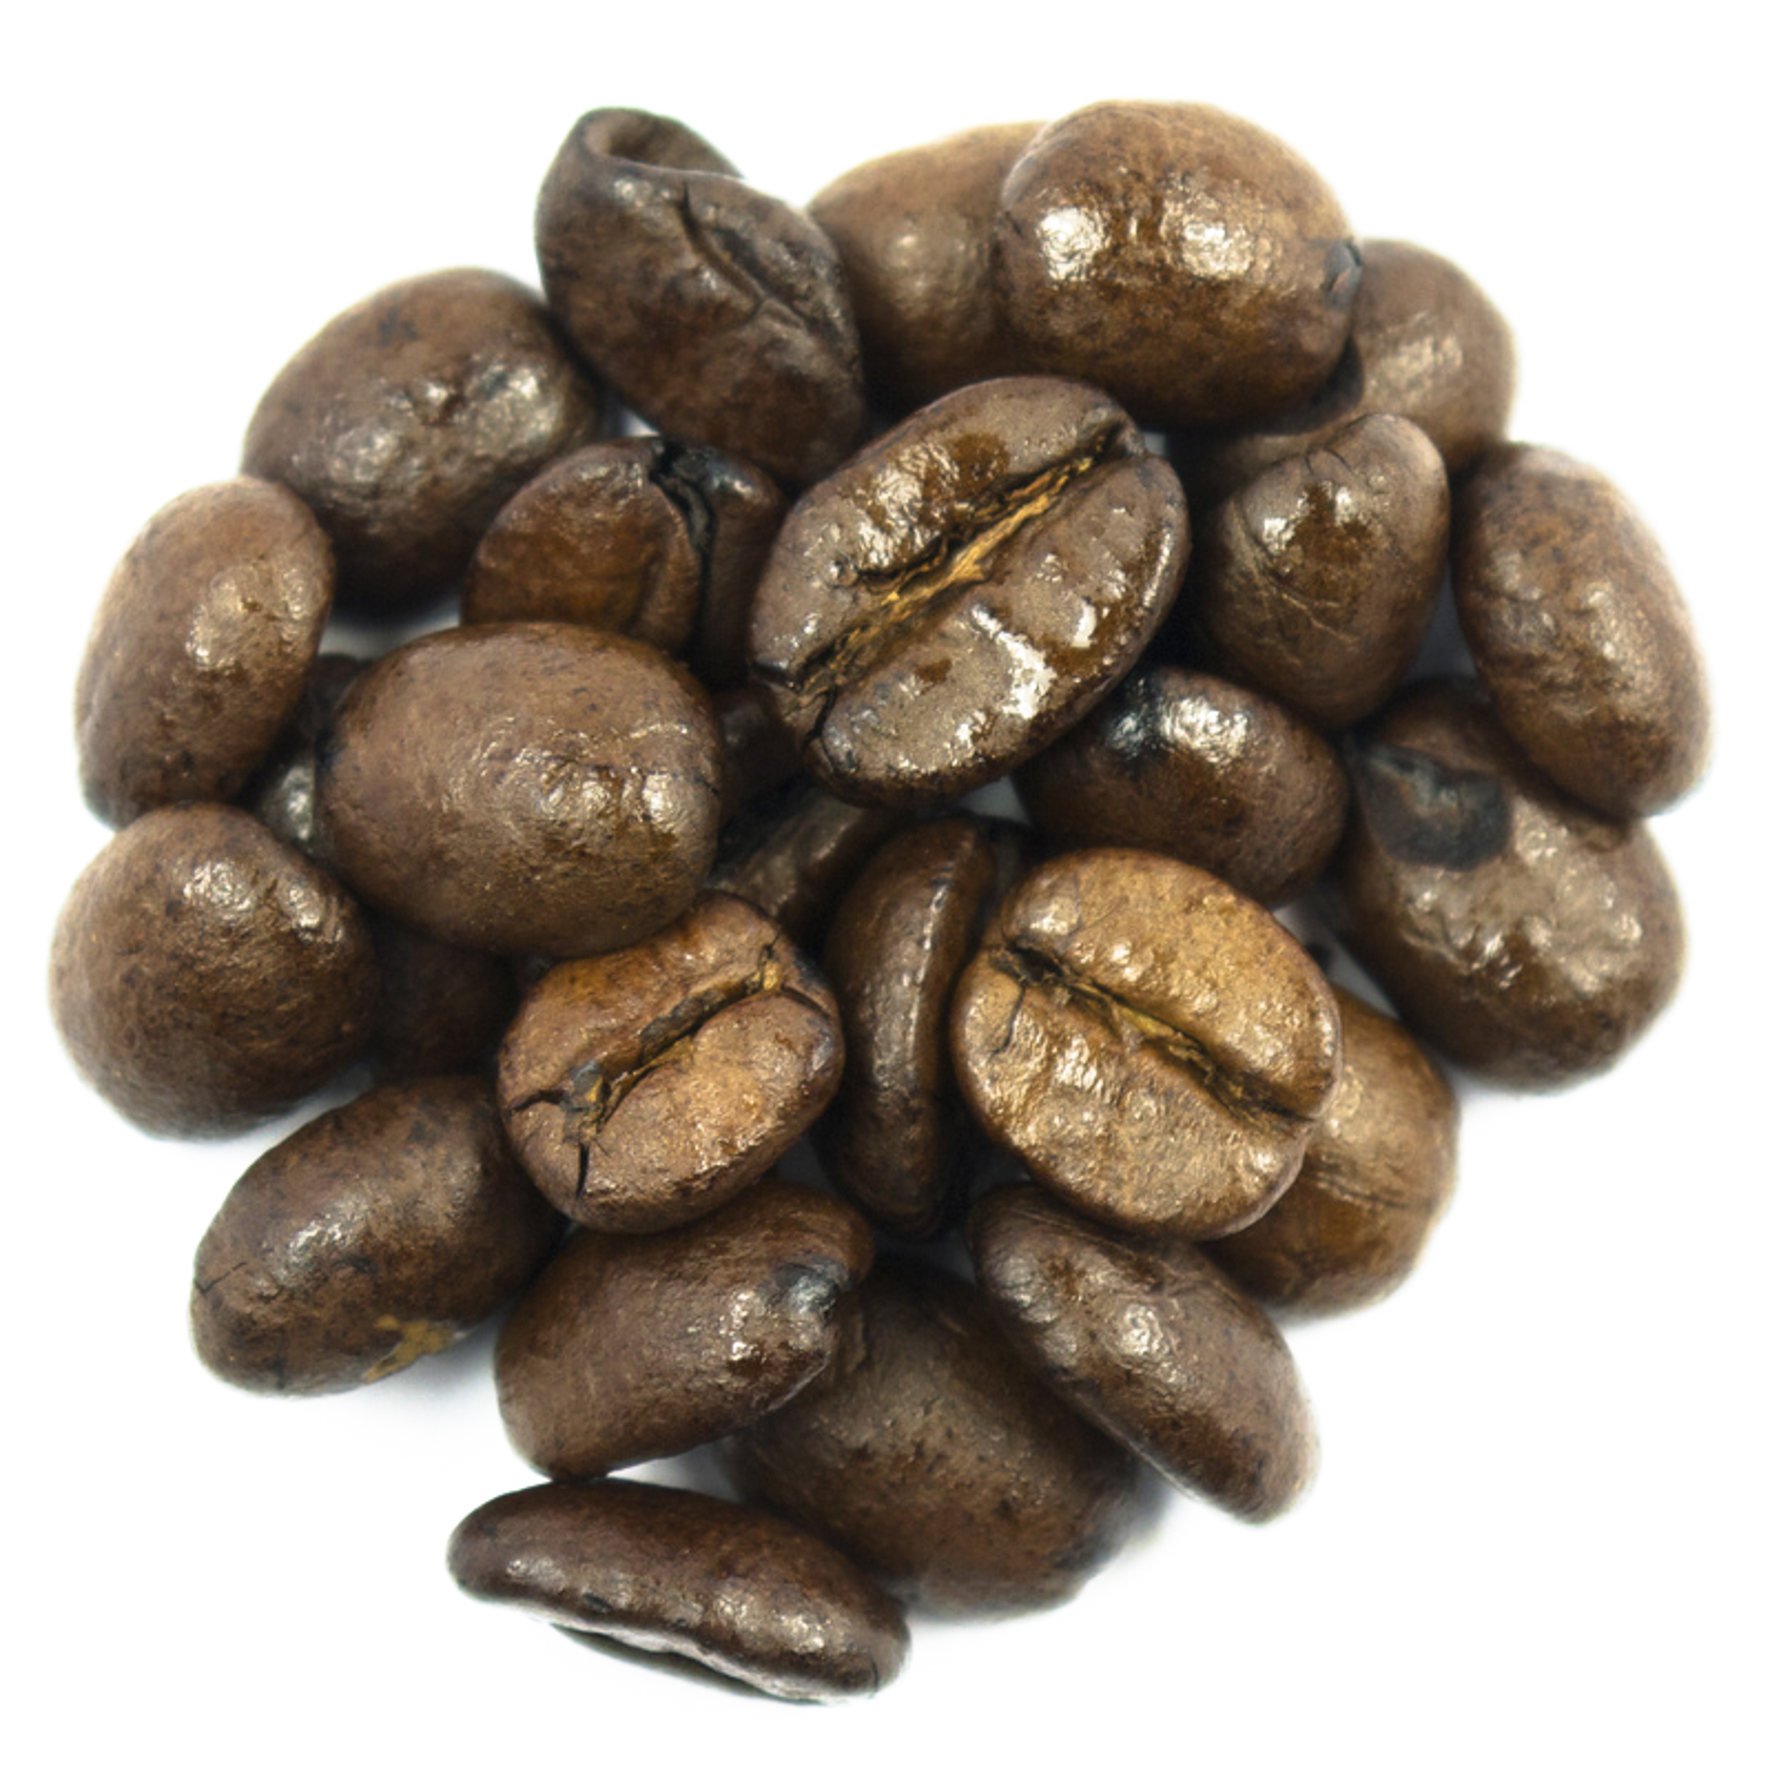 Brazilian Coffee Medium Roast (Rainforest Alliance) - Coffee Beans